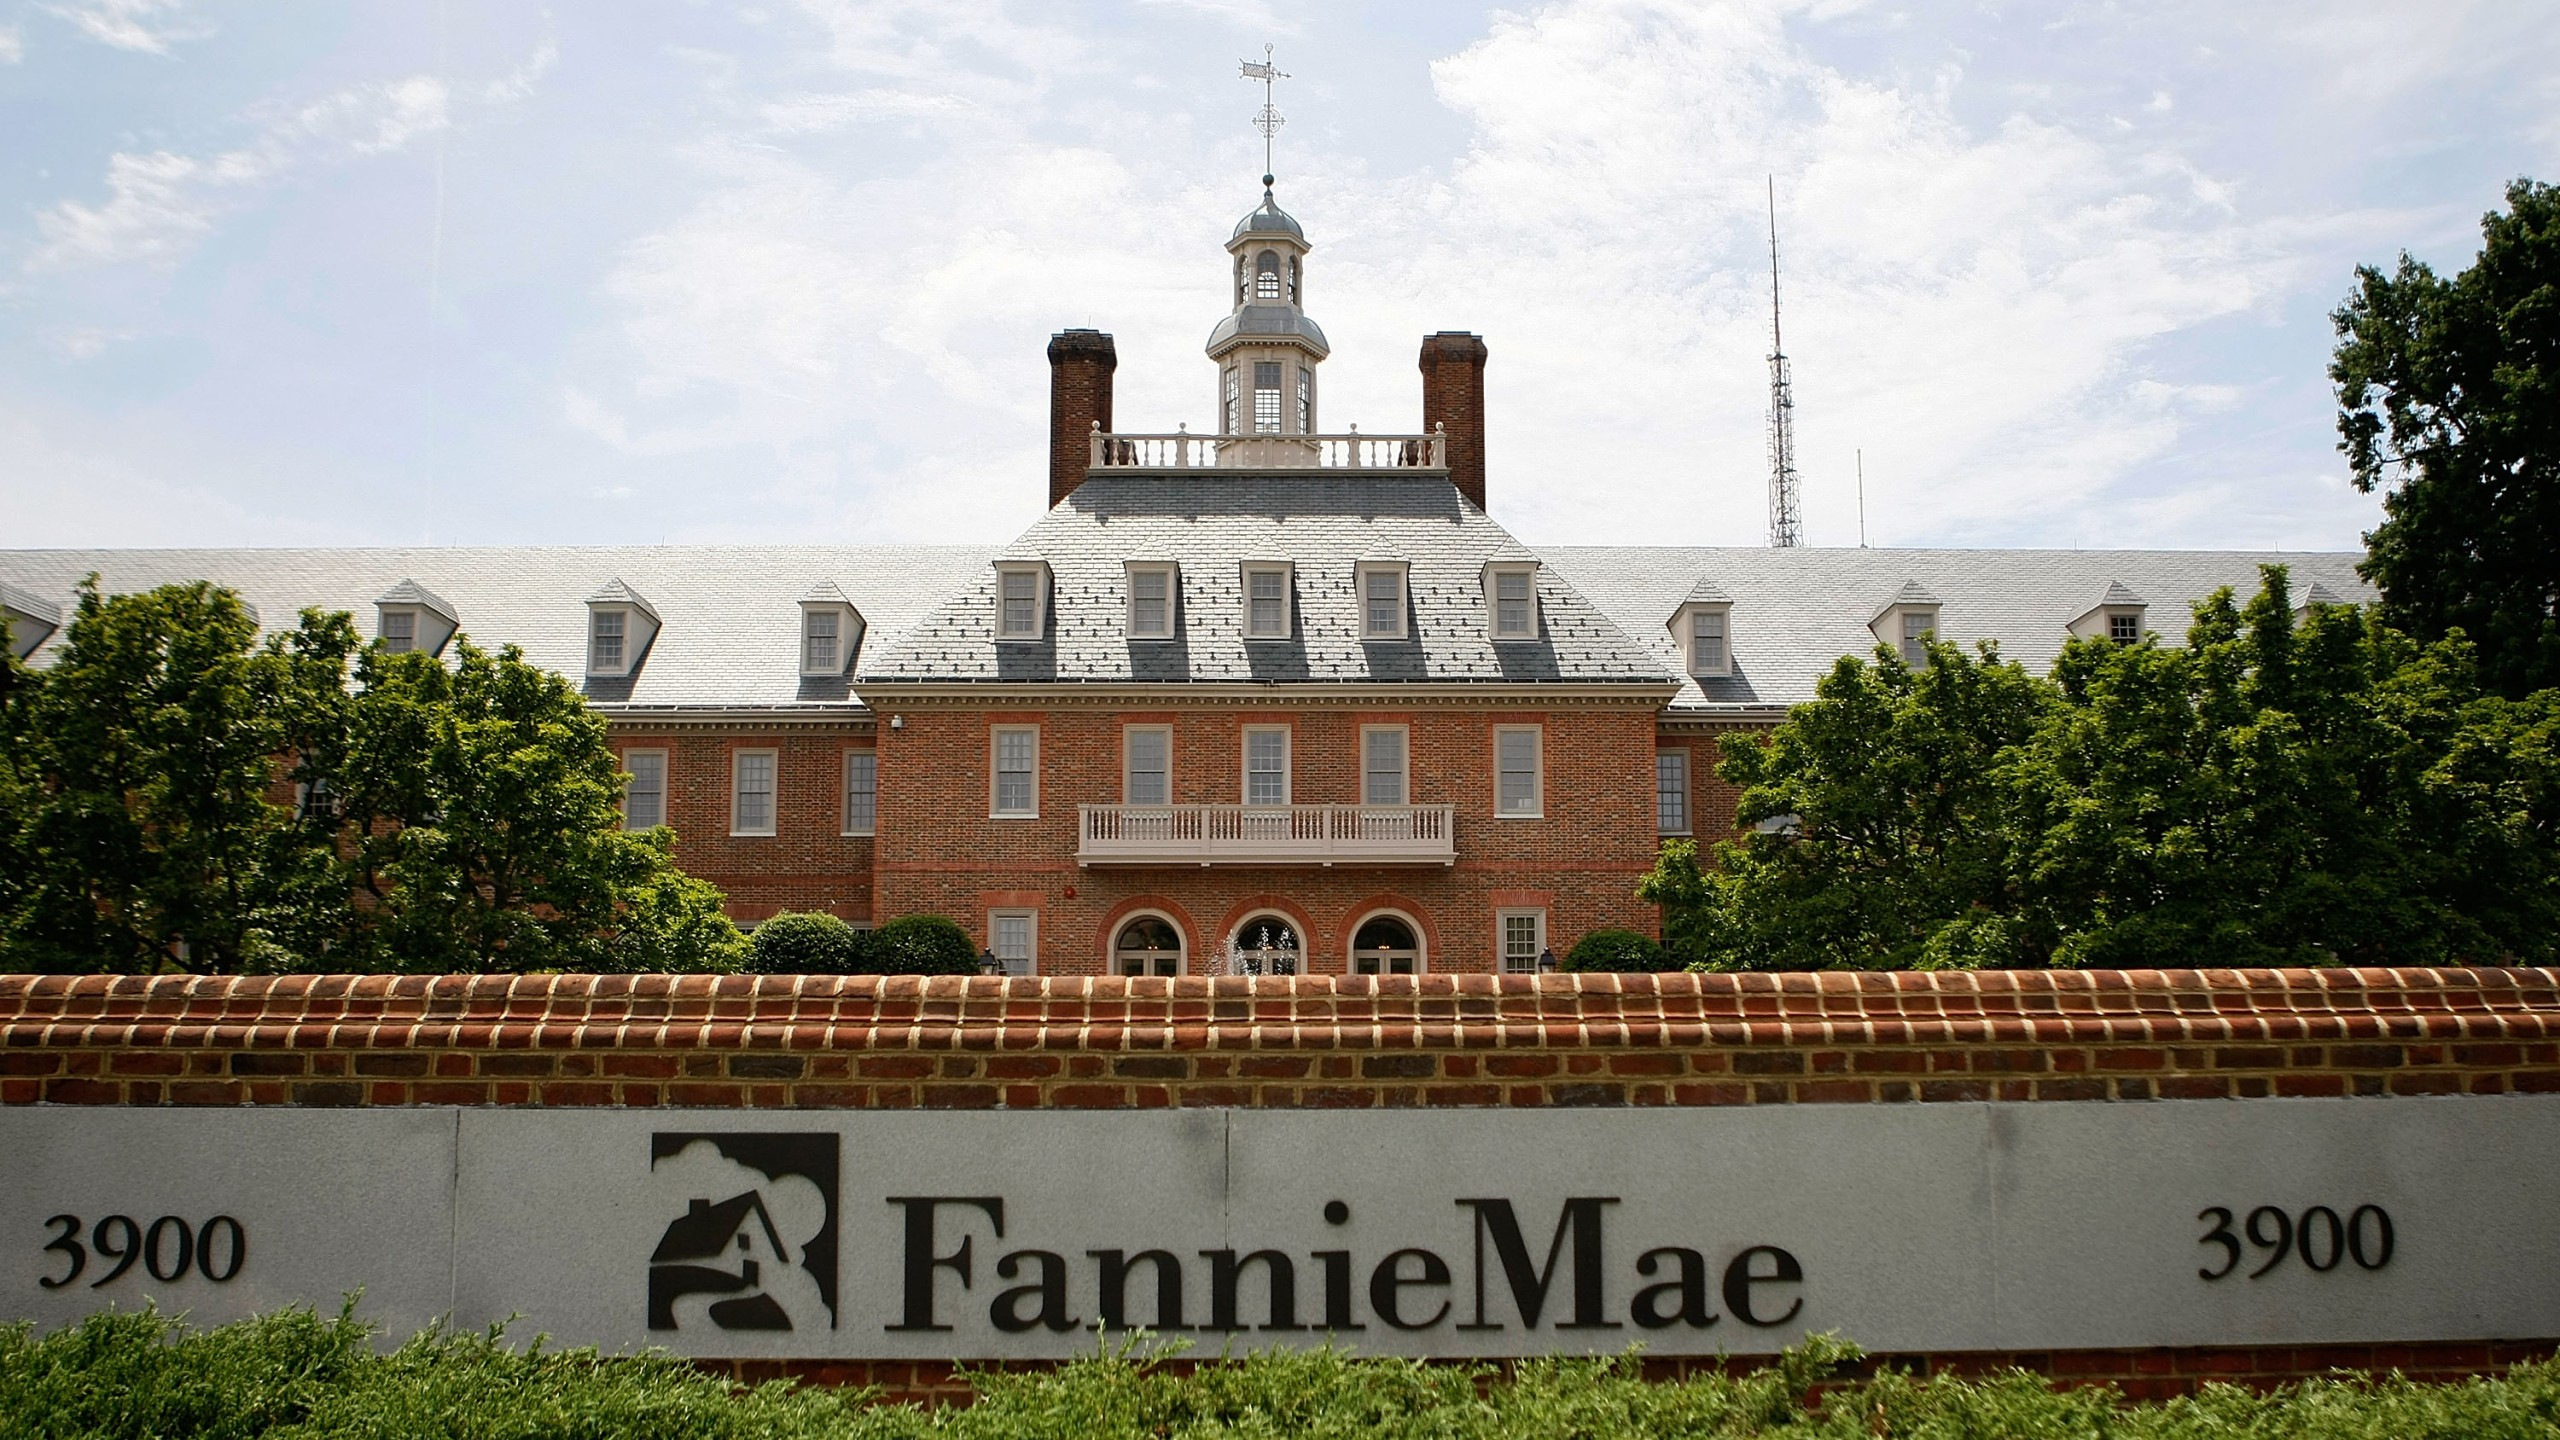 The Fannie Mae headquarters in Washington, D.C., is seen in a July 10, 2008, file photo. (Credit: Mark Wilson / Getty Images)